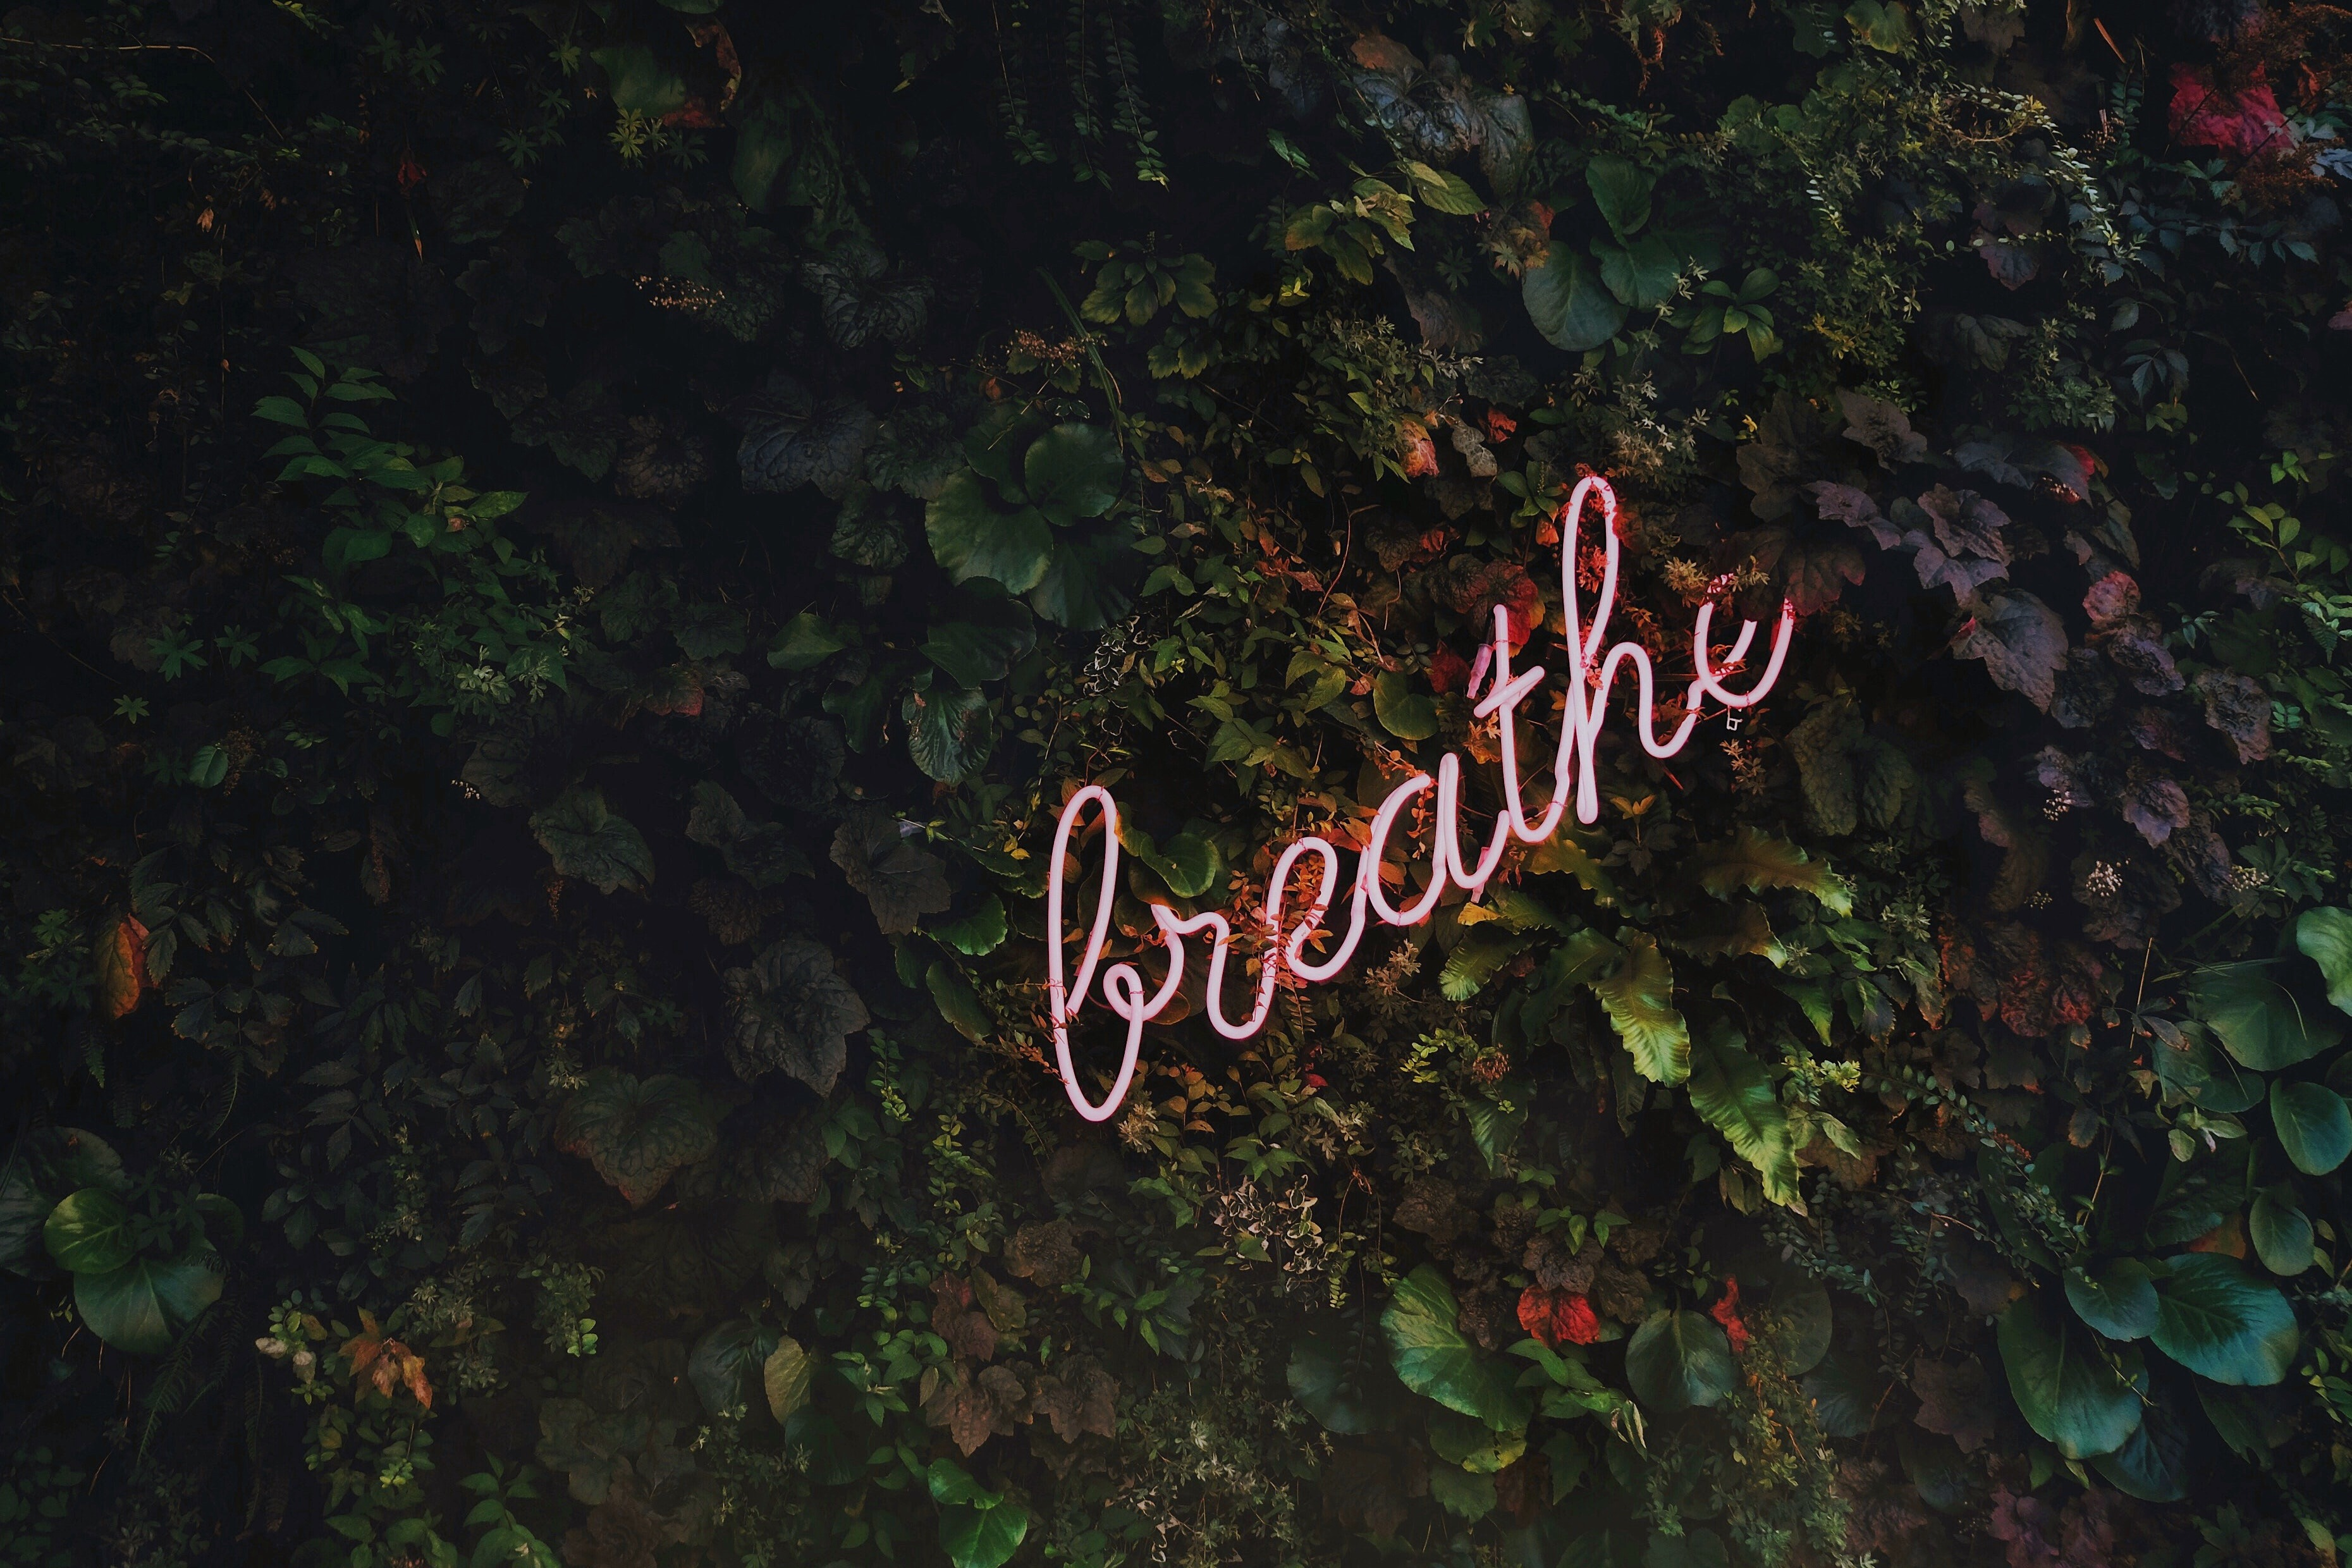 Making Self-Care a Priority in 2019